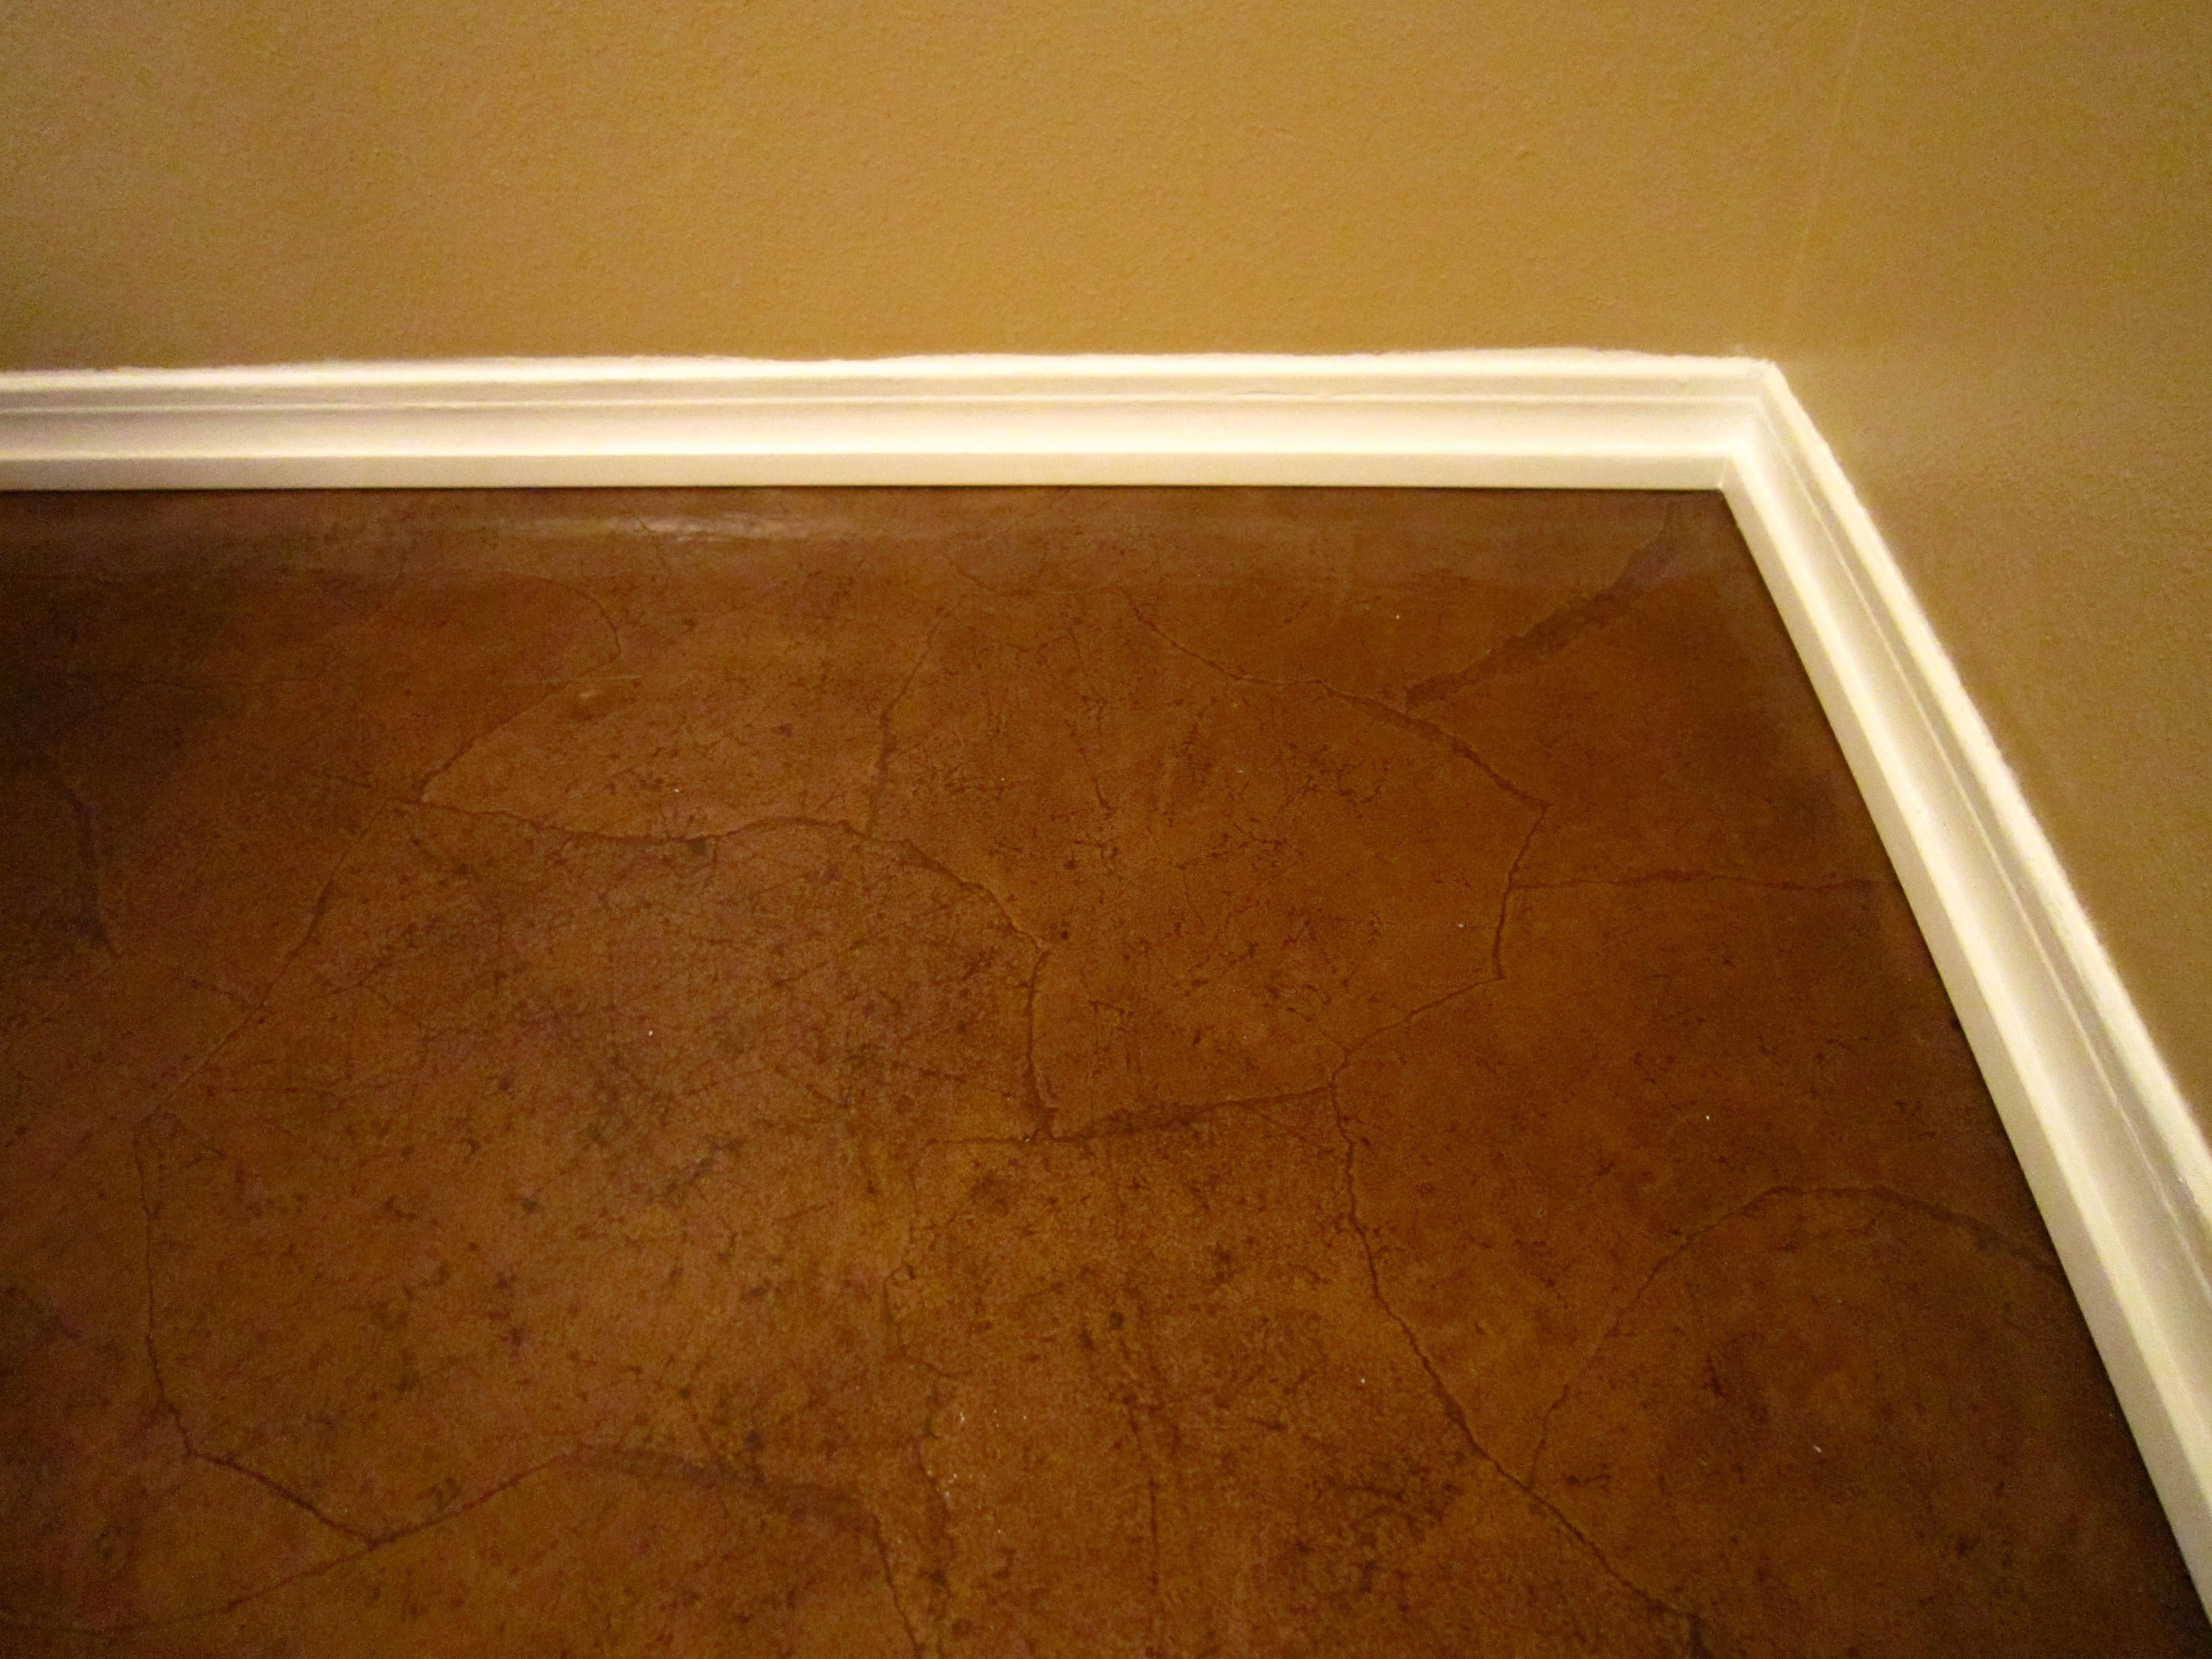 Diy stained brown paper floor awesomeness under 30 do it diy stained brown paper floor awesomeness under 30 do it yourself hardwoodlaminate floor alternative solutioingenieria Images